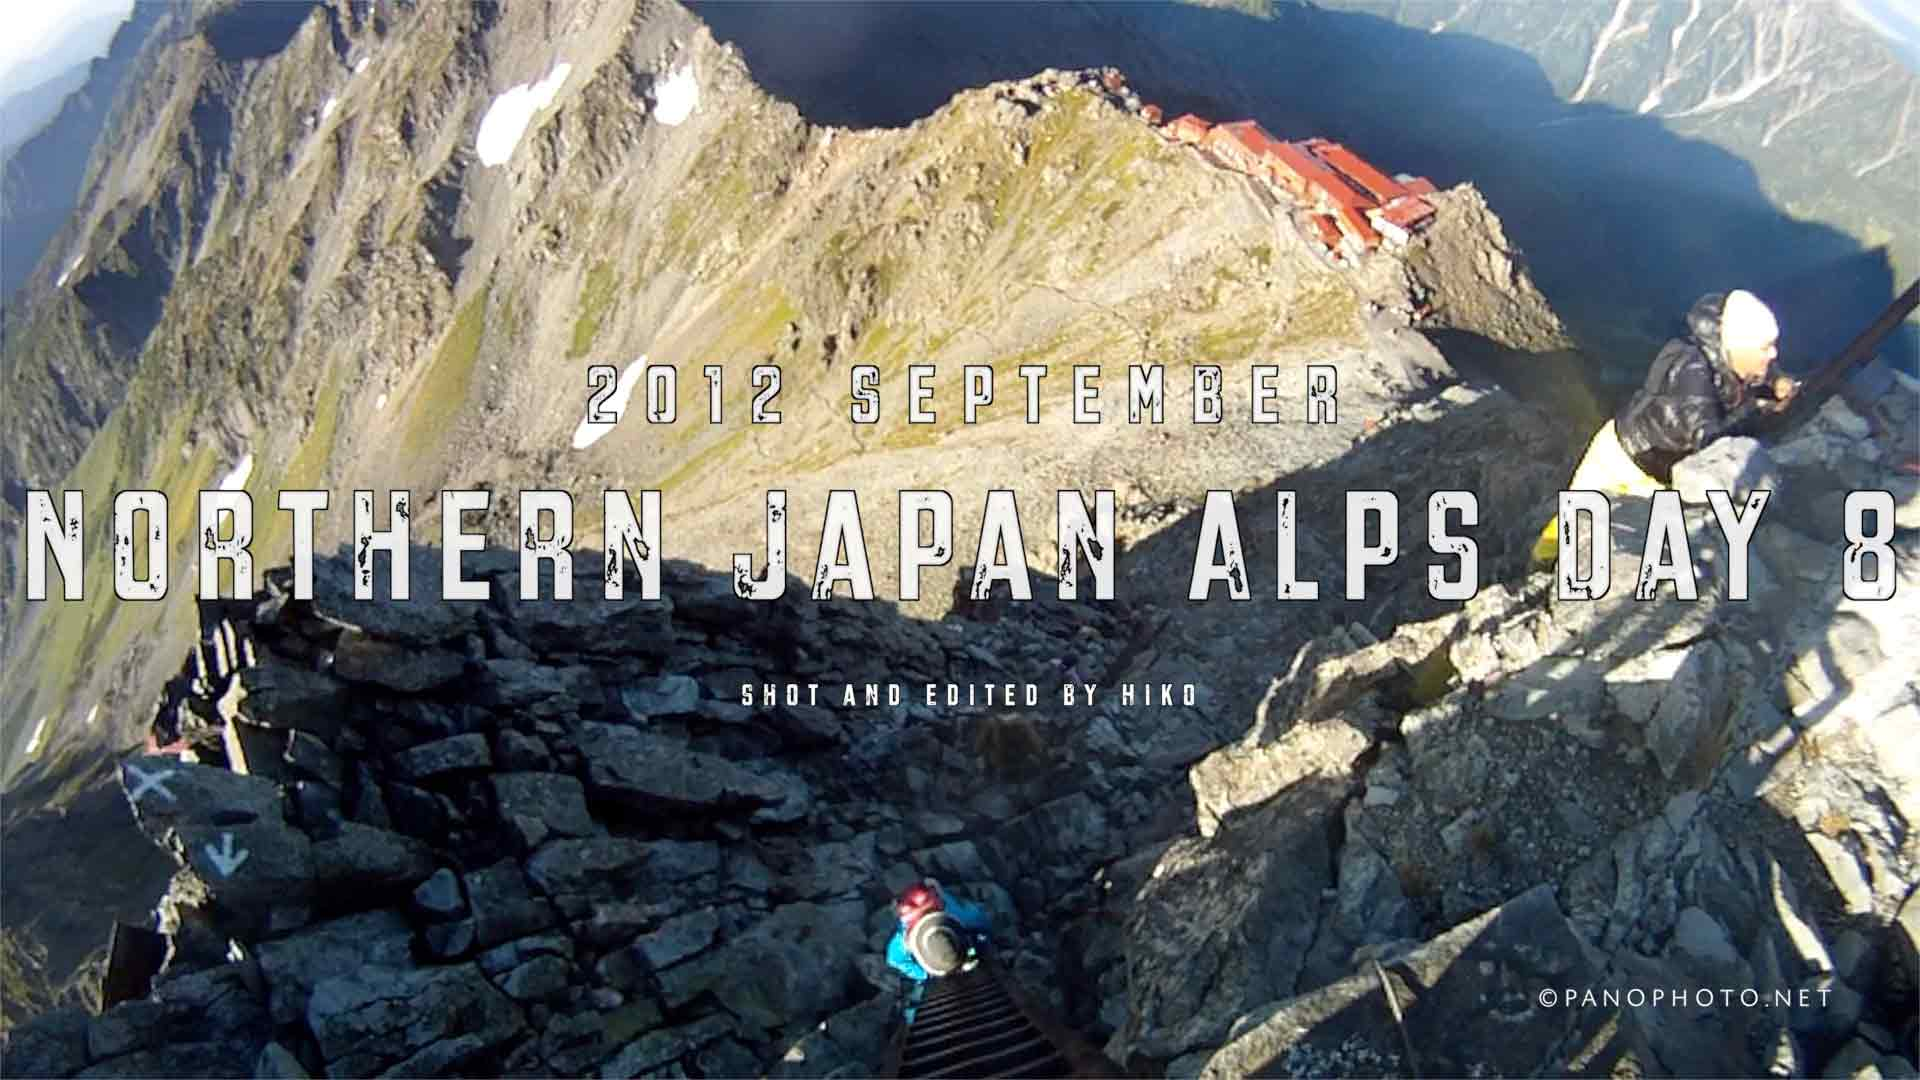 Northern-Japan-Alps-Day-8-Featured-Image